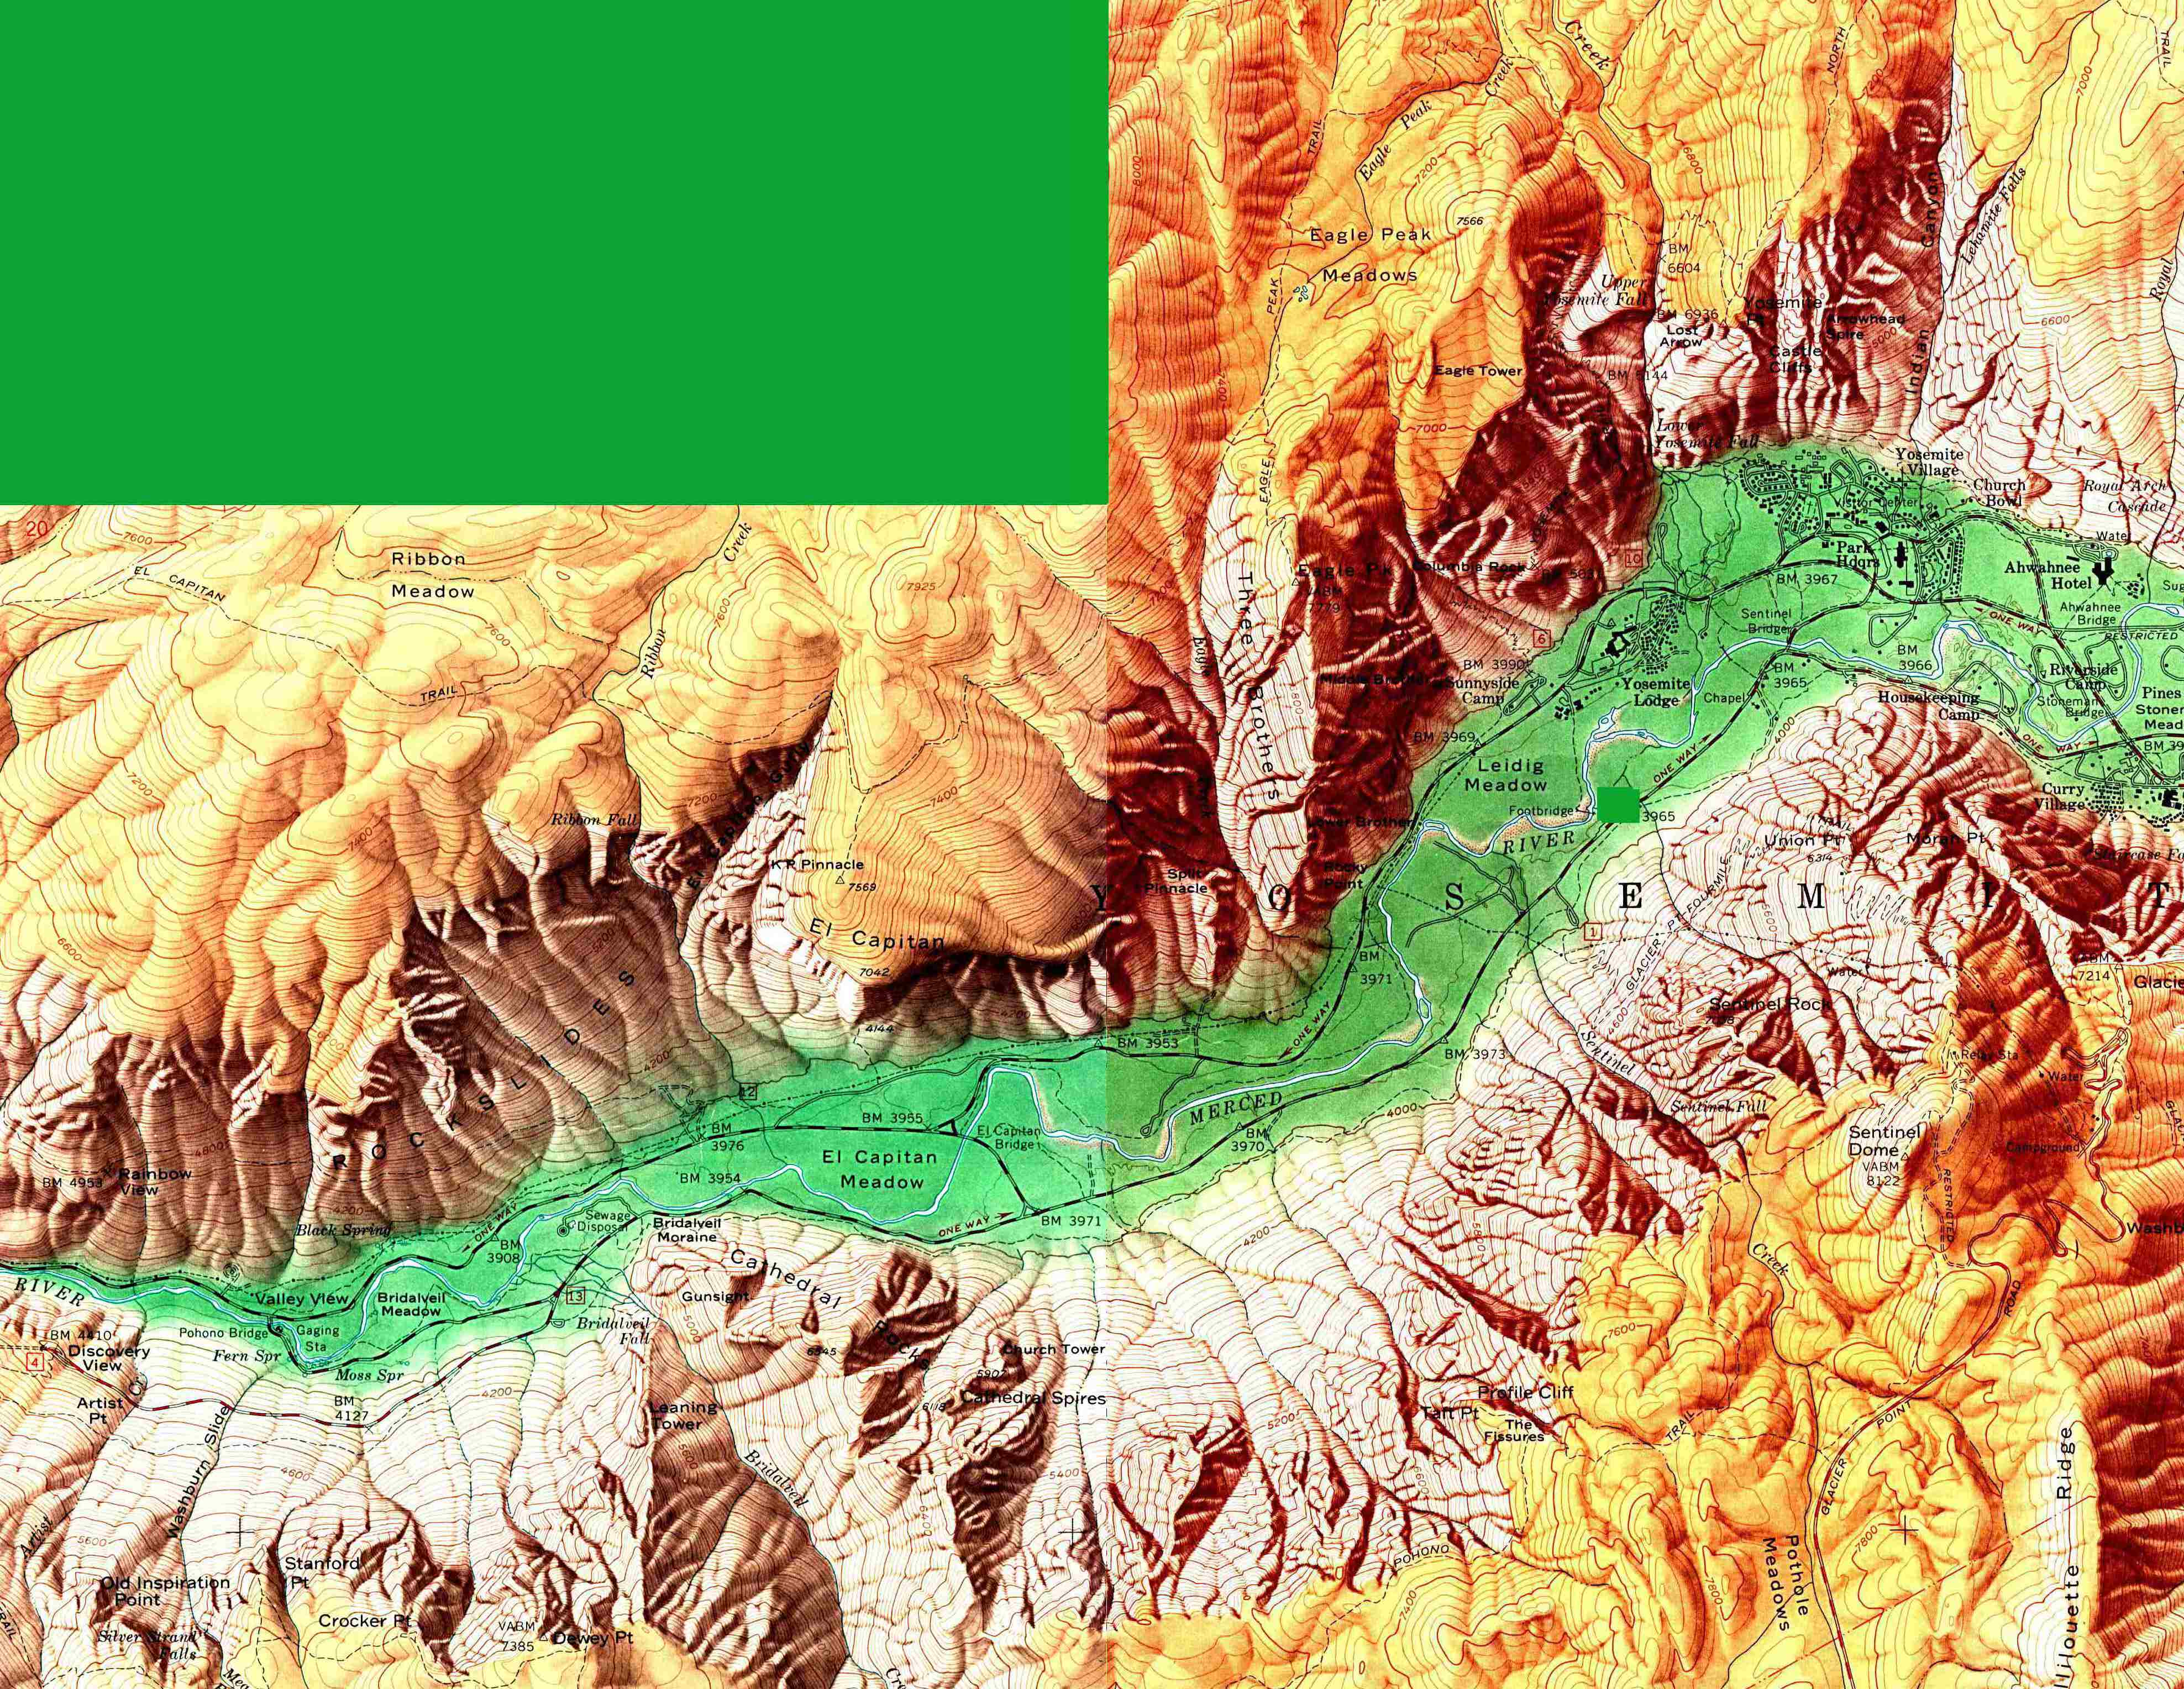 Maps of United States National Parks, Monuments and Historic Sites Yosemite National Park - Yosemite Valley [California] (Shaded Relief Map) 1:24,000, U.S. Geological Survey, 1958 (1MB)